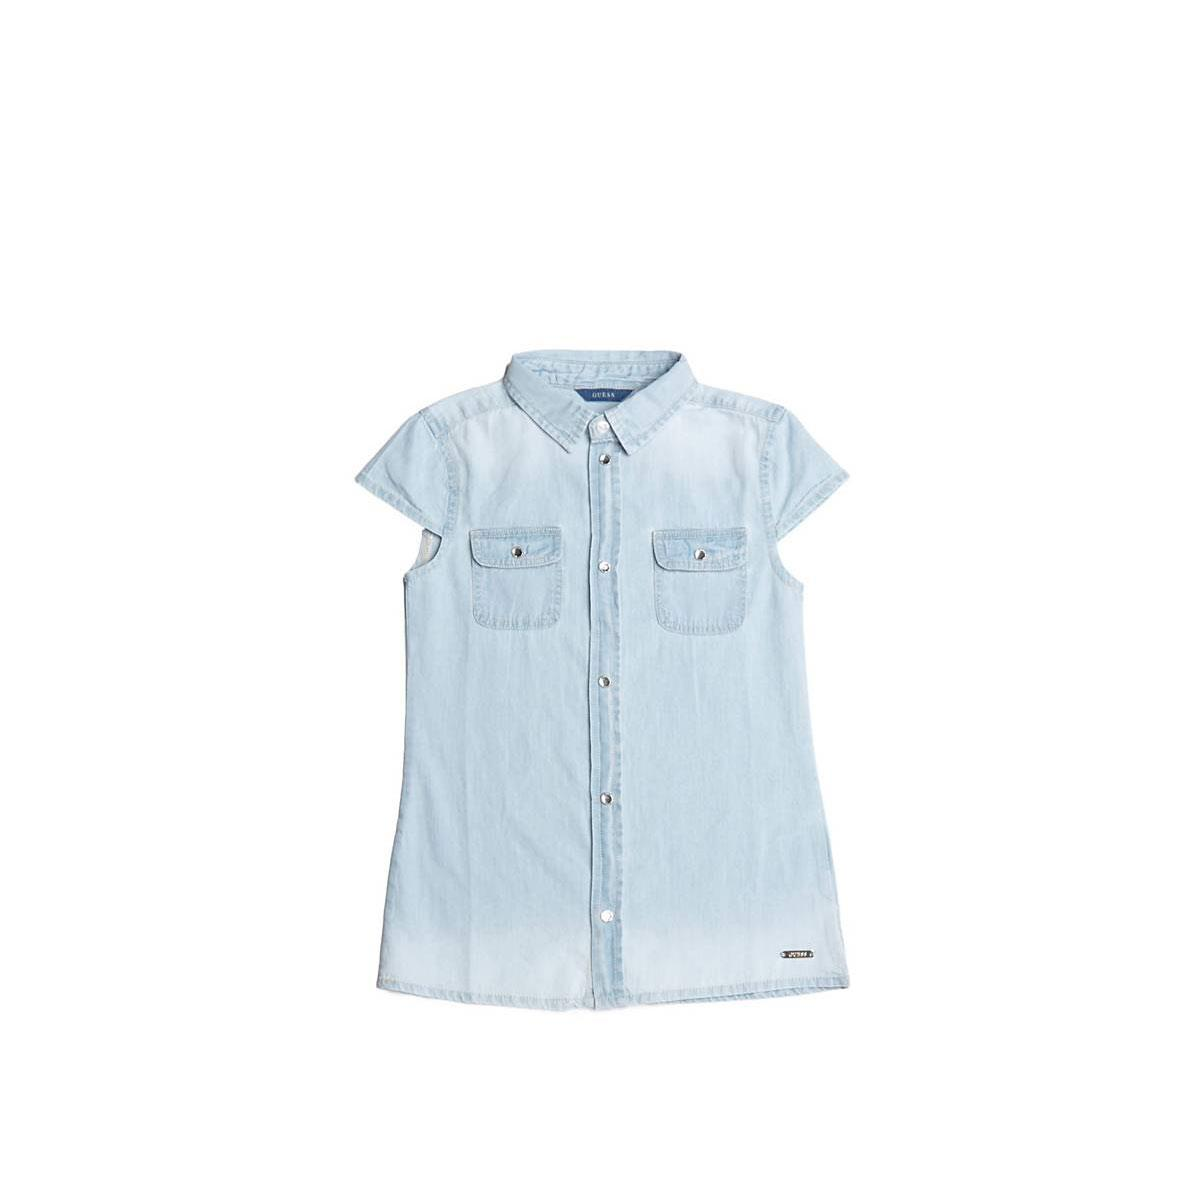 Online Jeans Camicia Price Shop Guess Special d4PqwXzx